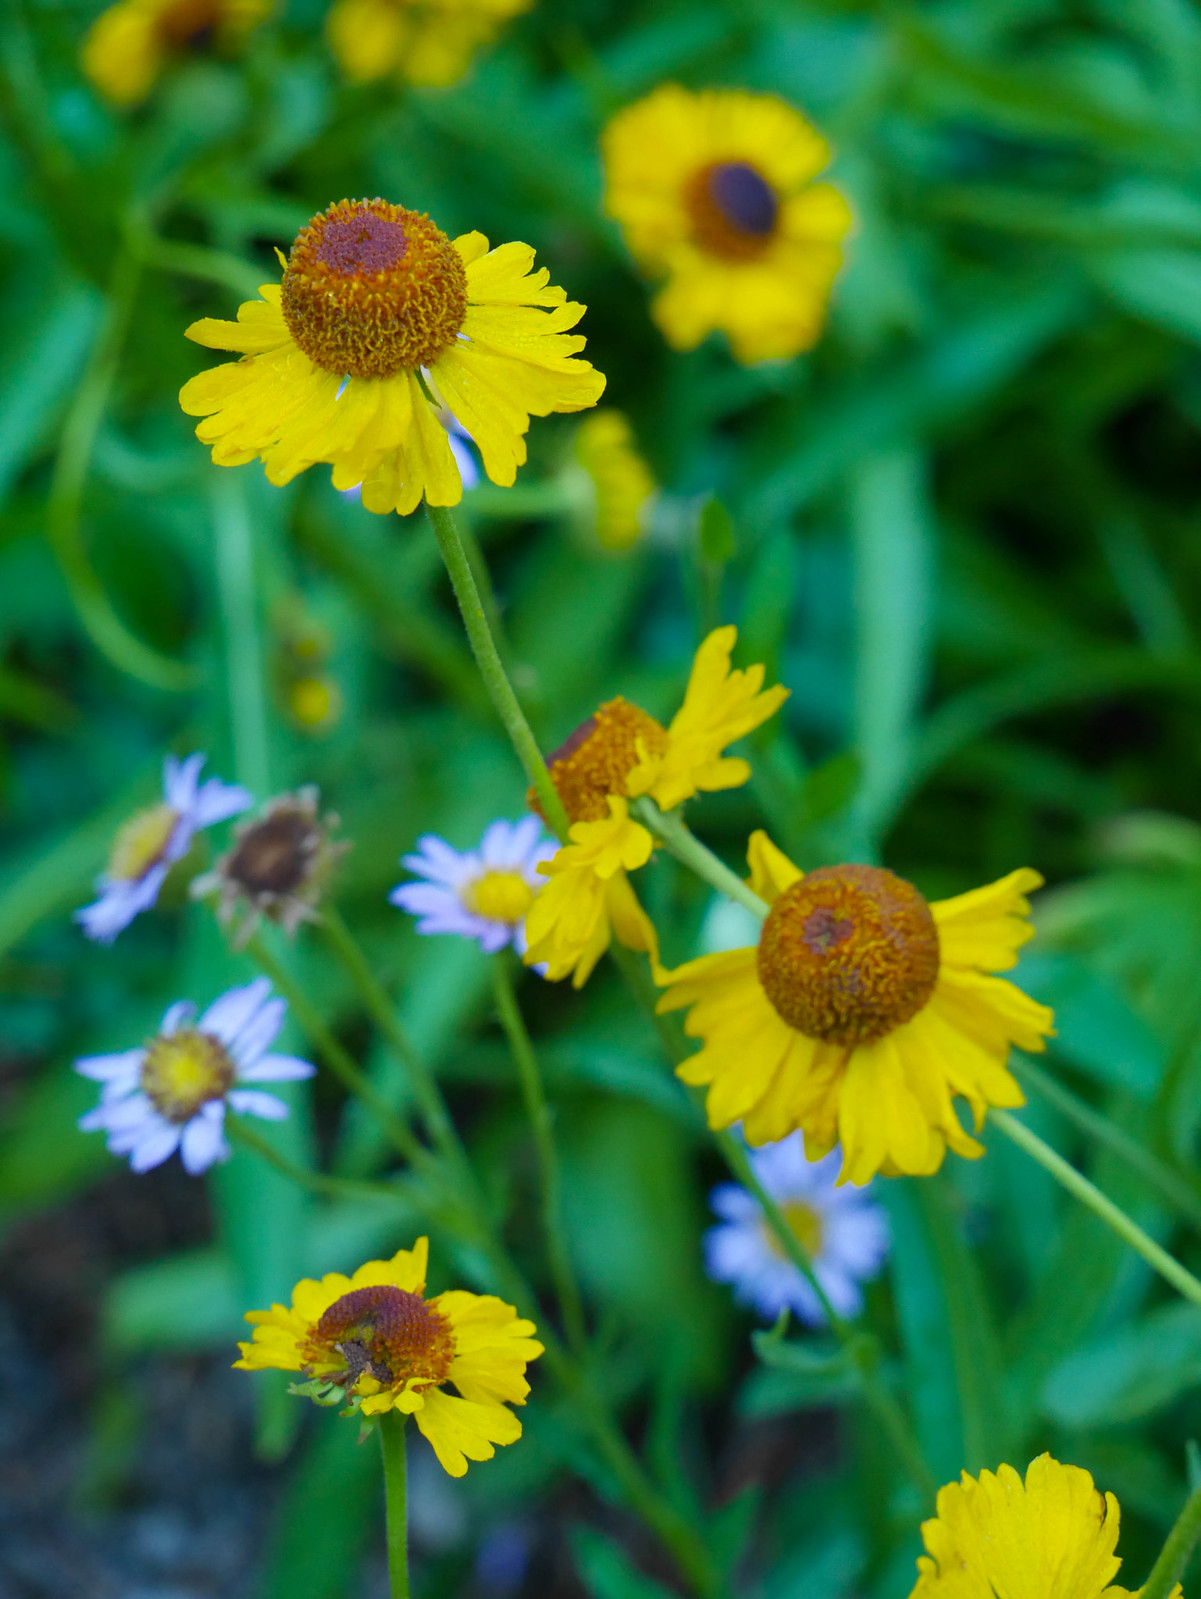 These flowers have the endearing name of sneezeweed.